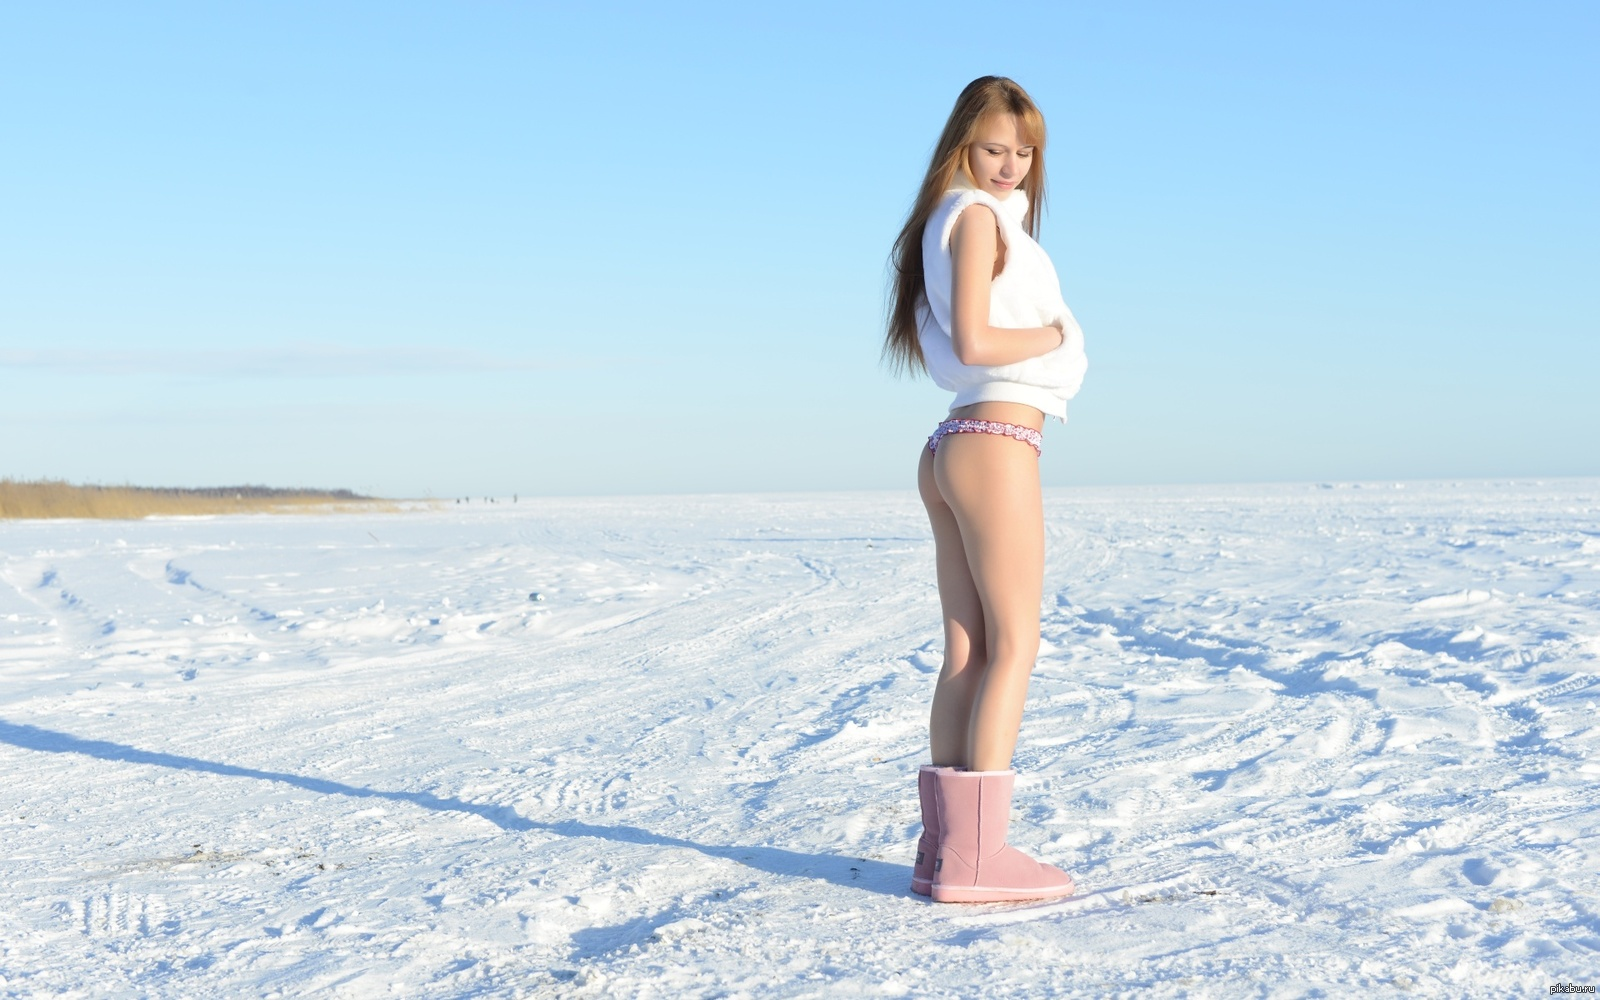 young-nude-girl-in-snow-photo